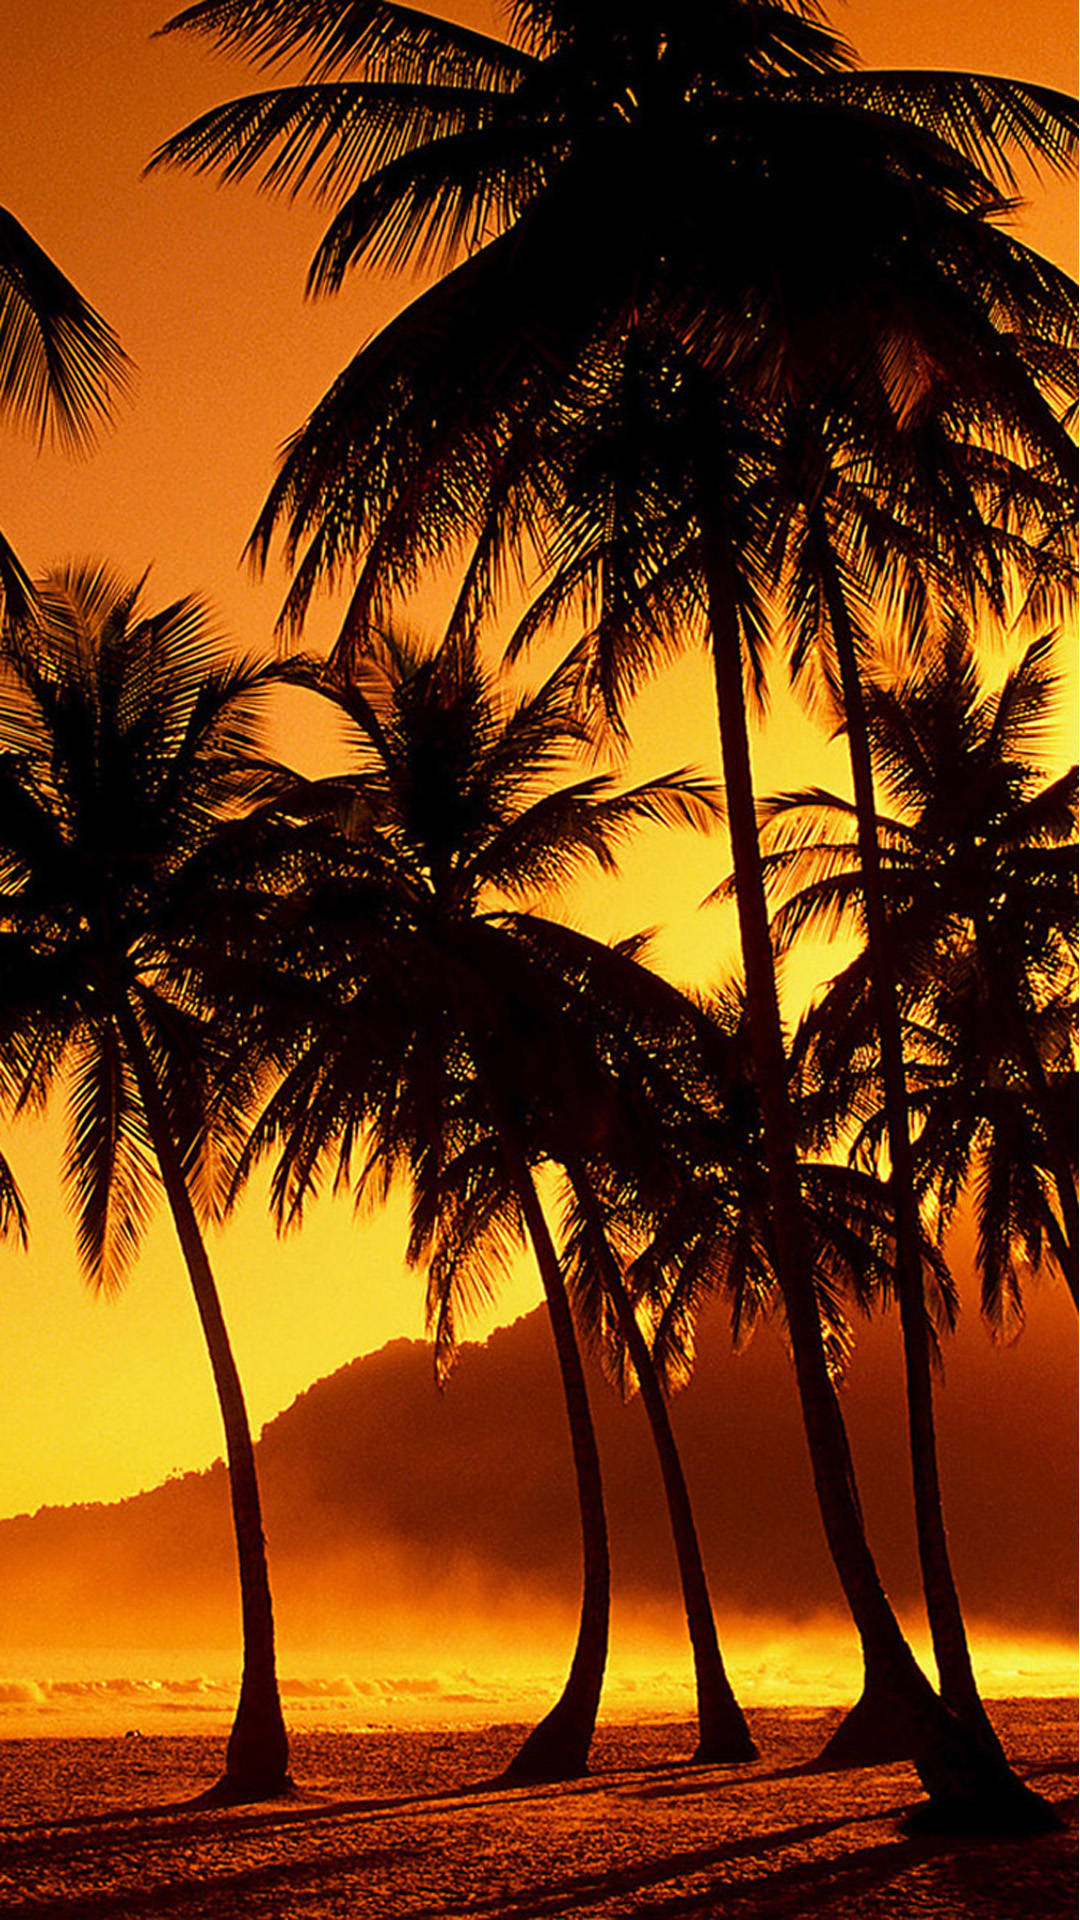 Nature Sunset Beach Coconut Grove Iphone 8 Wallpaper Sunset With Coconut Trees 977768 Hd Wallpaper Backgrounds Download